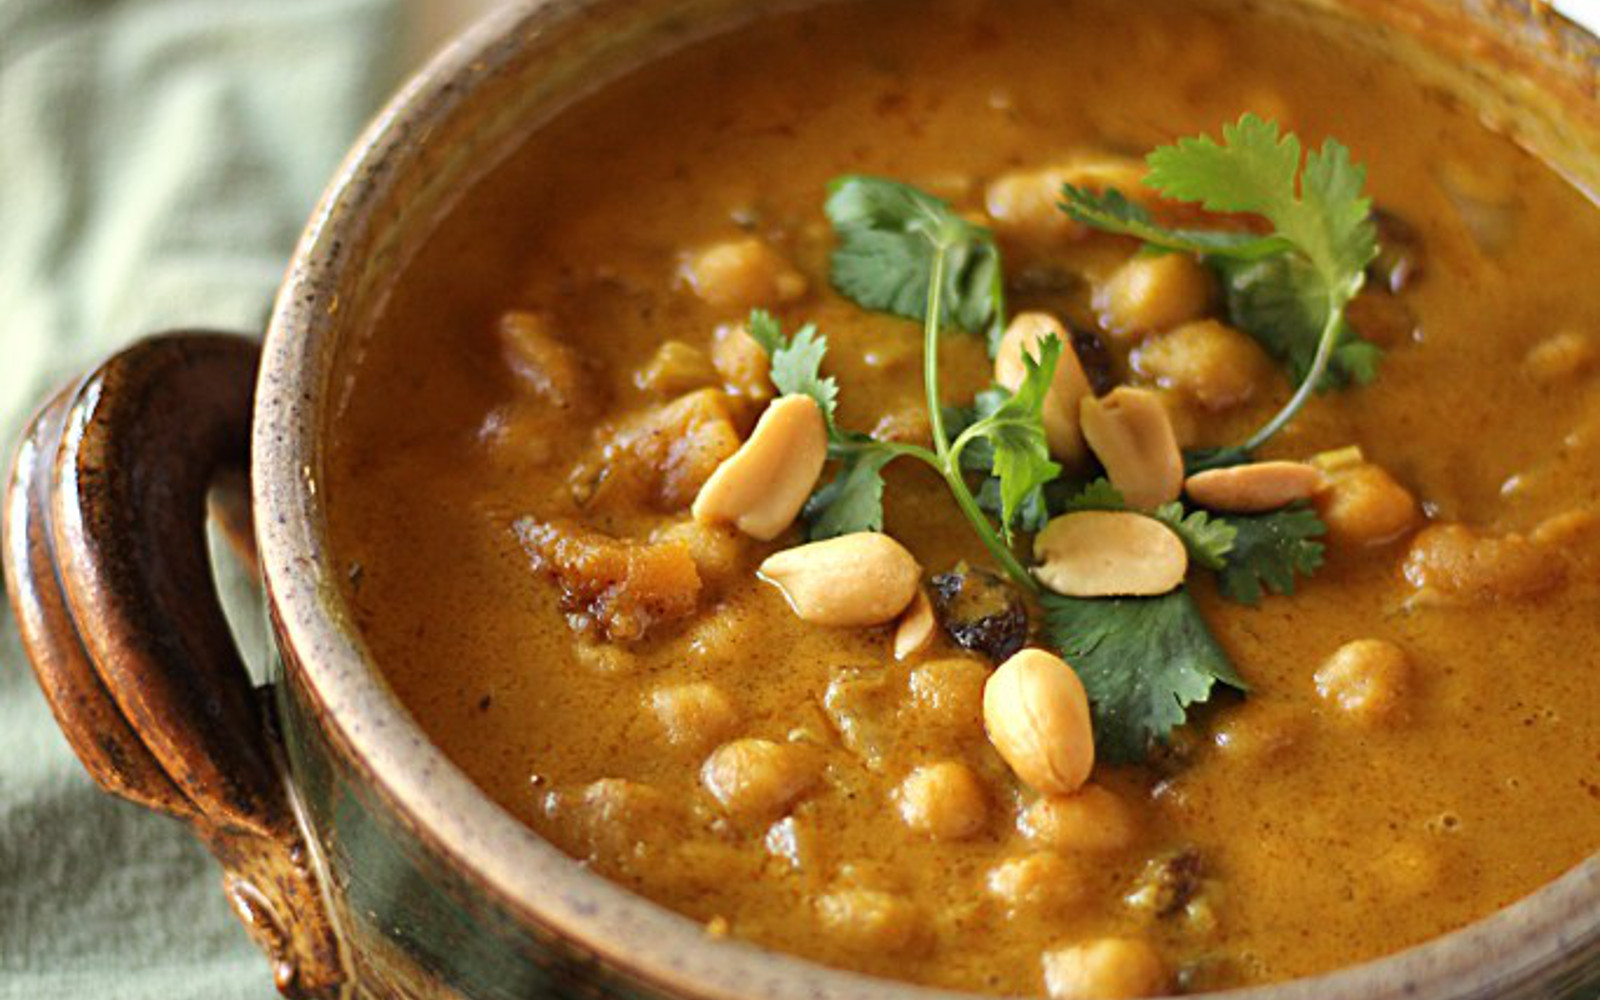 Vegan Chickpea Peanut Stew With Apricot and Raisins [Gluten-Free] topped with cilantro